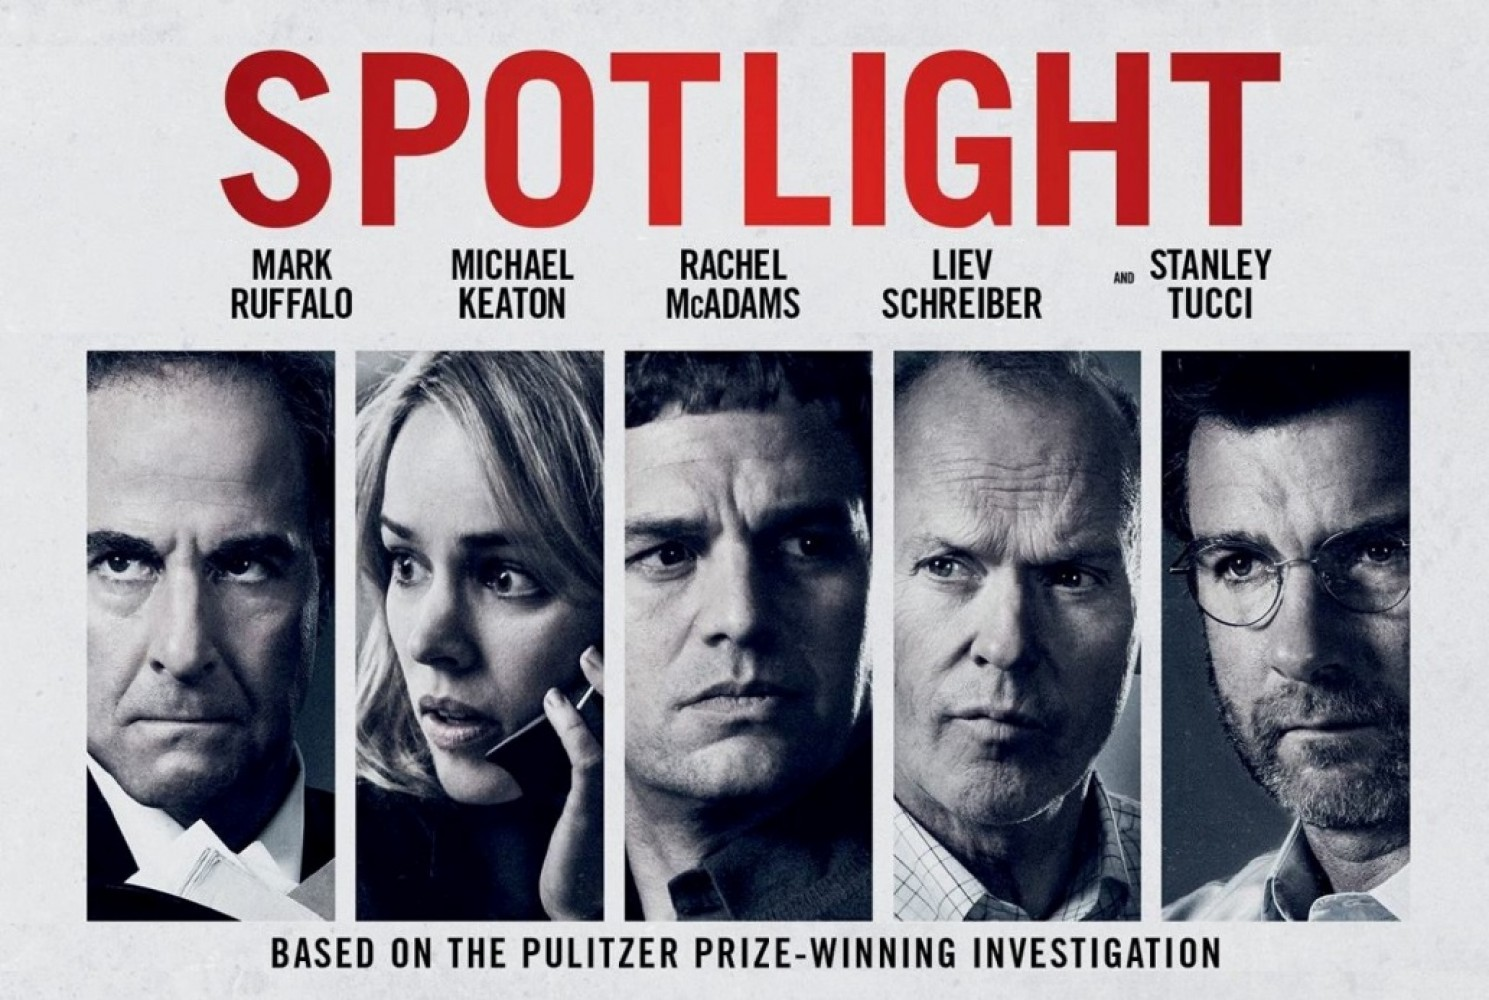 Spotlight (2015) Directed By Tom McCarthy - Movie Review